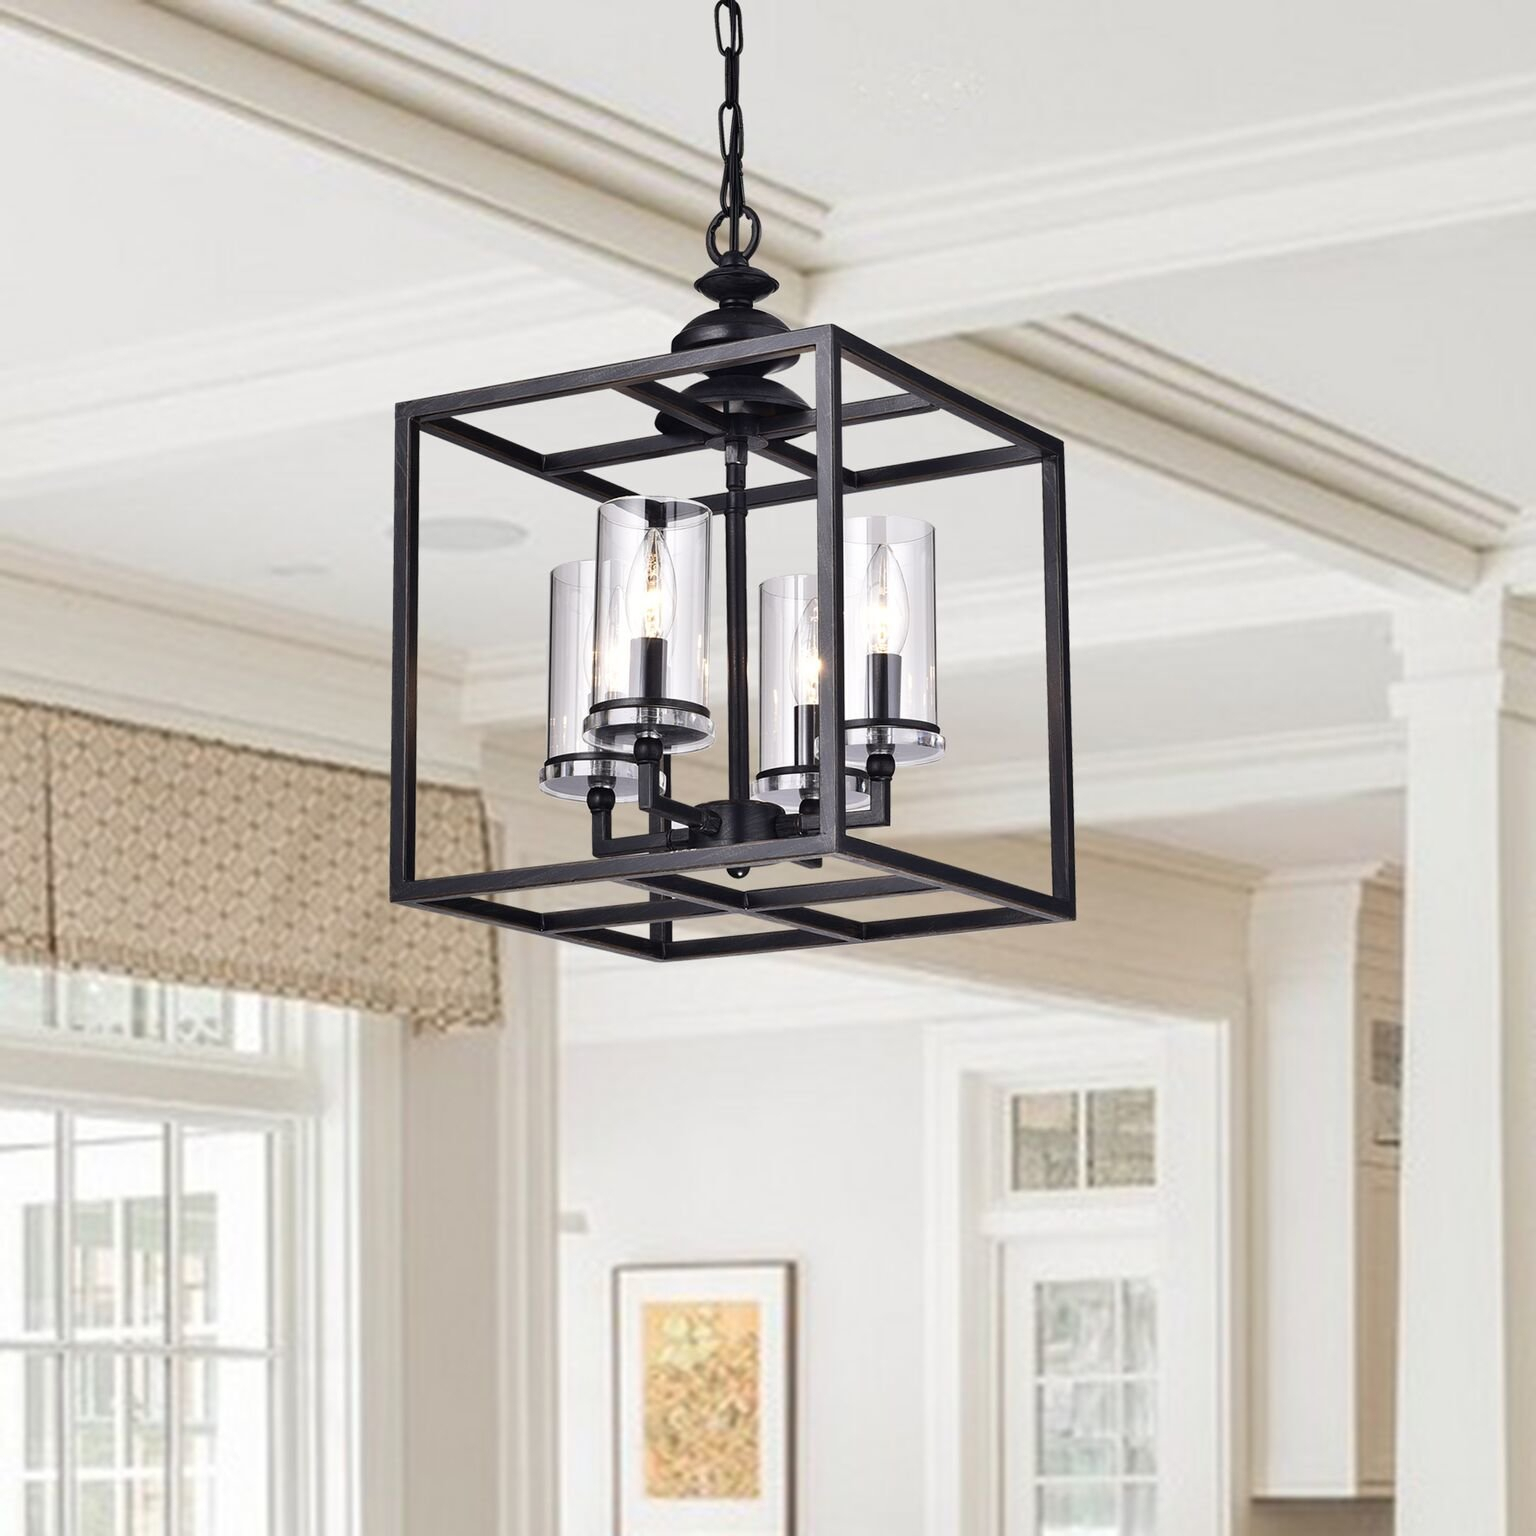 Cheverton 4-Light Square/rectangle Chandelier for Sherri-Ann 3-Light Lantern Square / Rectangle Pendants (Image 3 of 30)